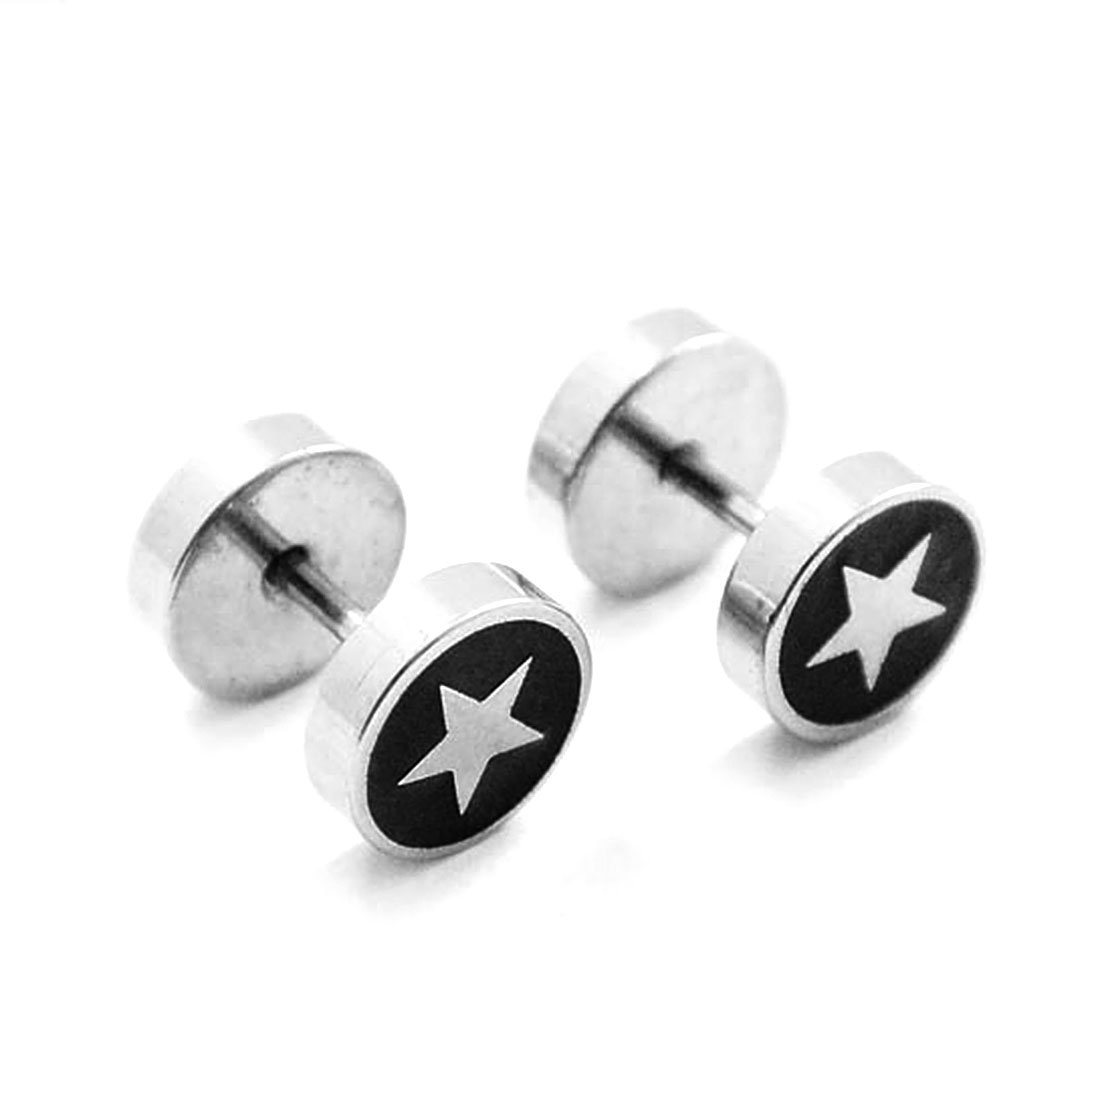 FOXI YOUTH Double Side Barbell Screw Back Stainless Steel Earrings(Silver Star) SE00067-1